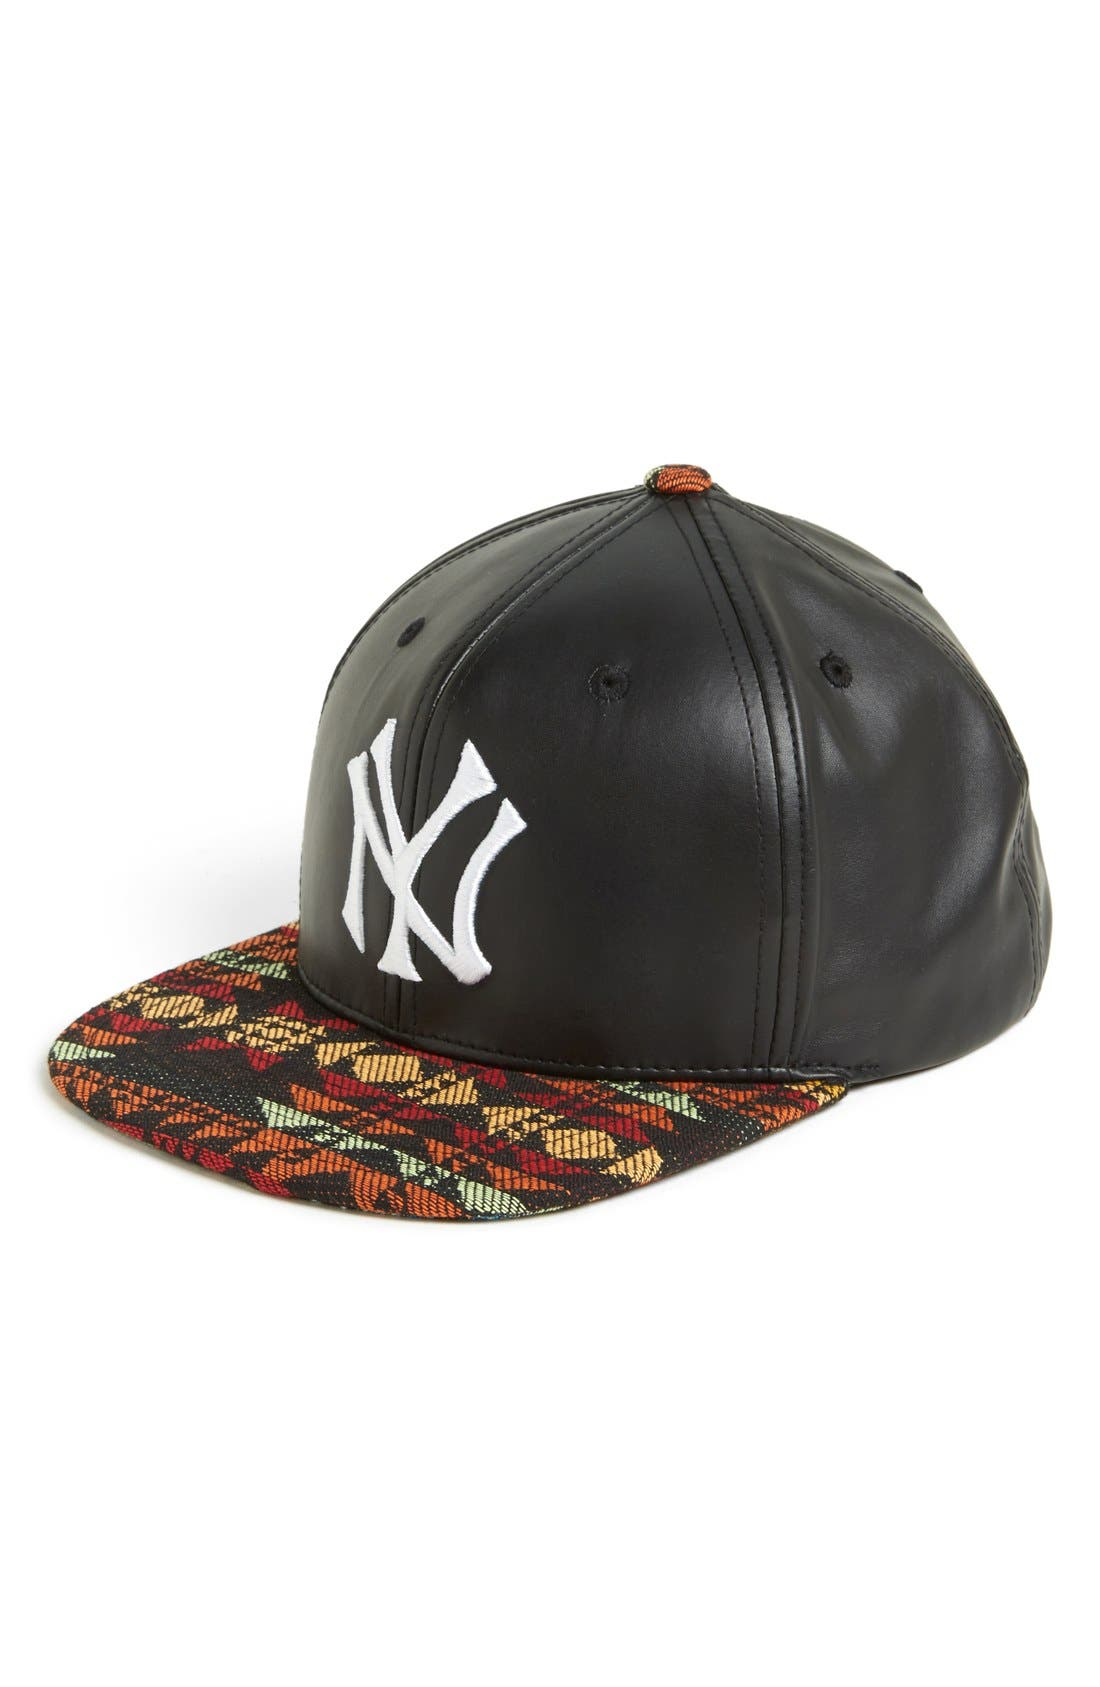 Alternate Image 1 Selected - American Needle 'Sleek - New York Yankees' Baseball Cap